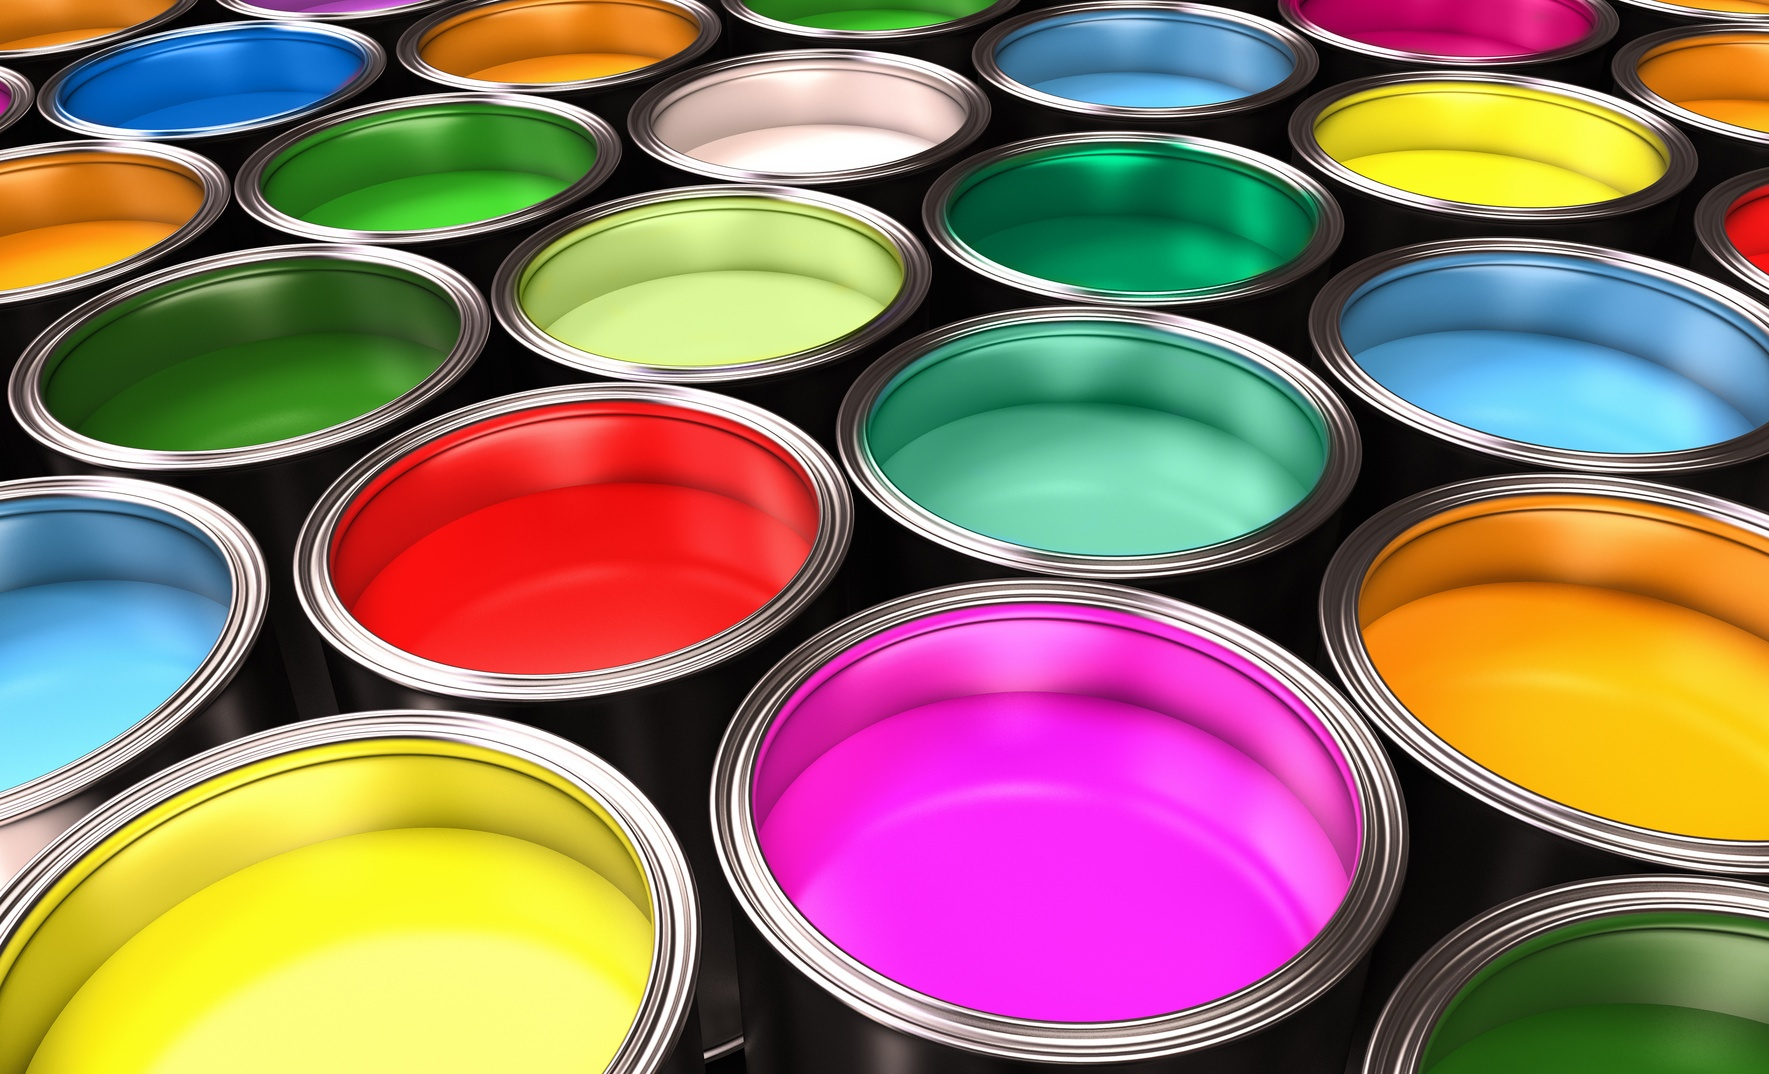 Buckets of paint in Ahwatukee AZ